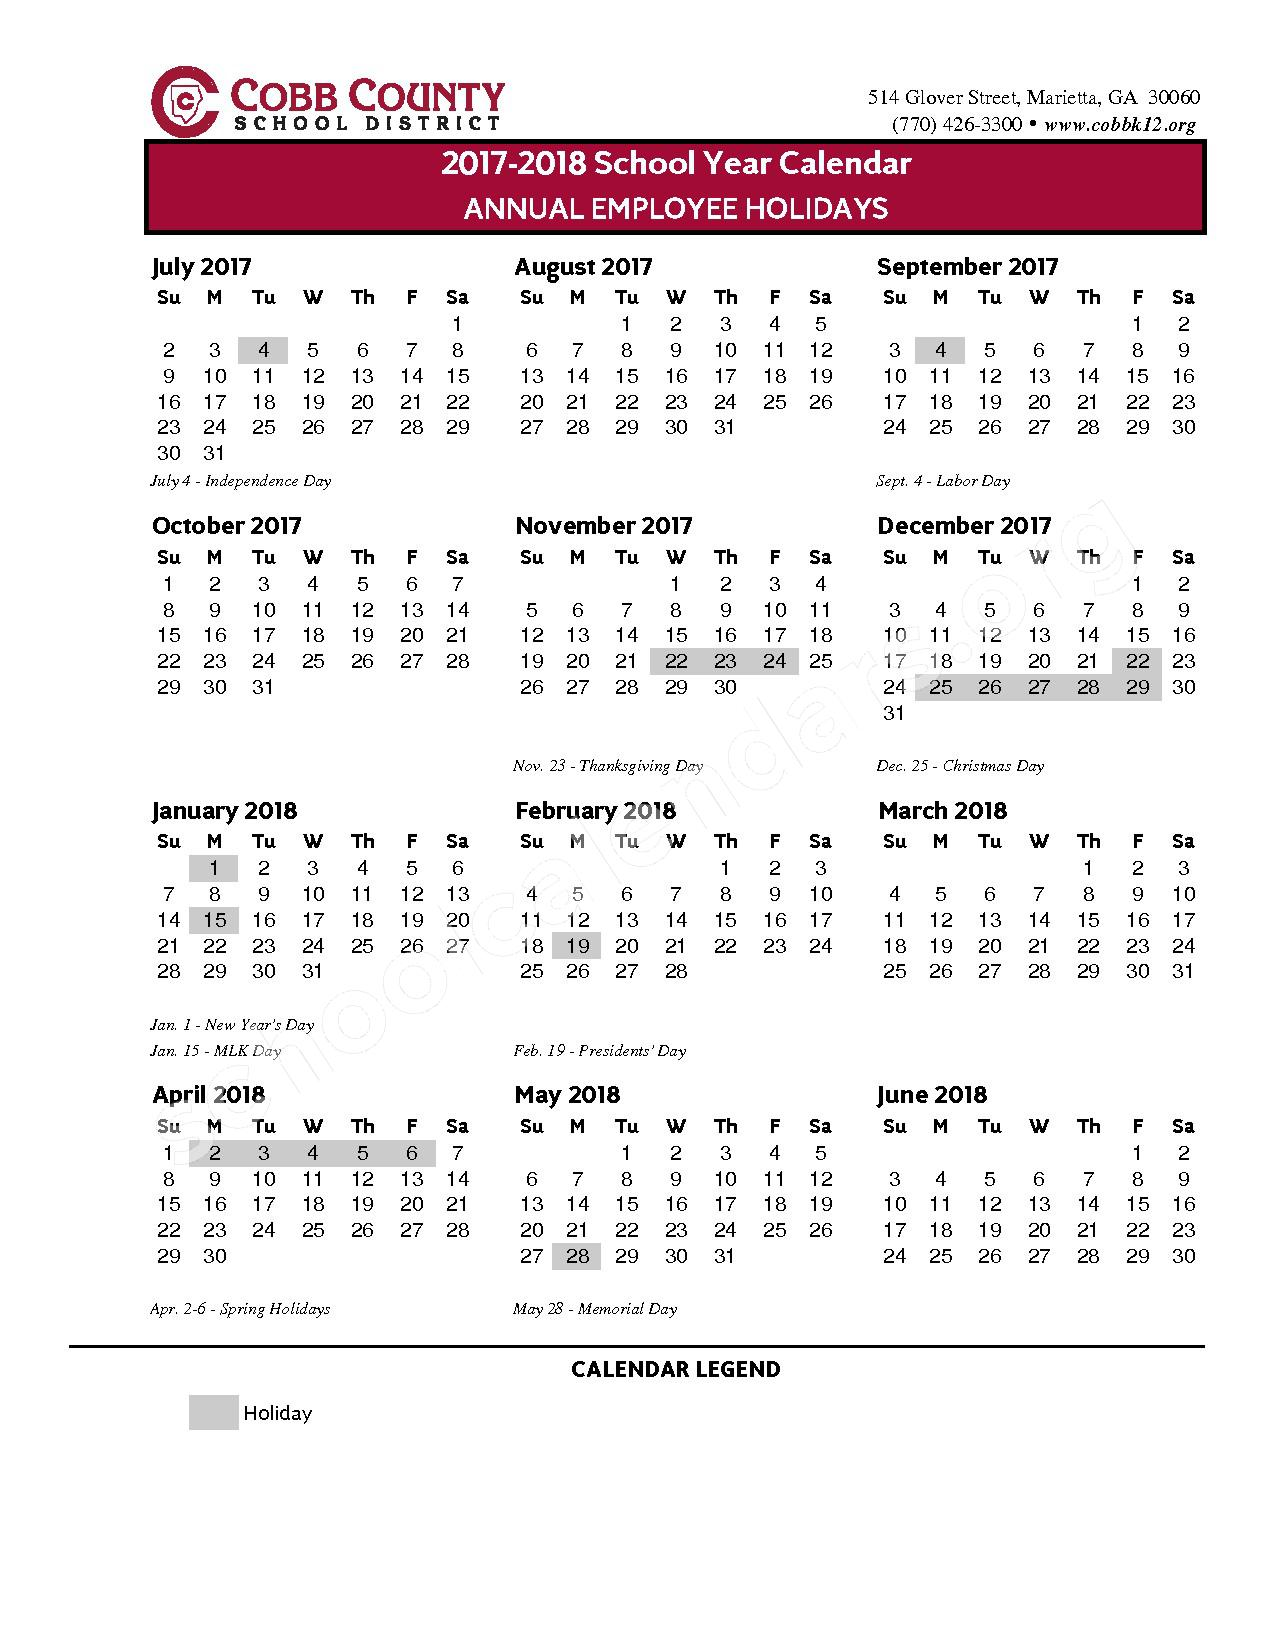 2017 - 2018 Annual Employee Holidays – Cobb County School District – page 1